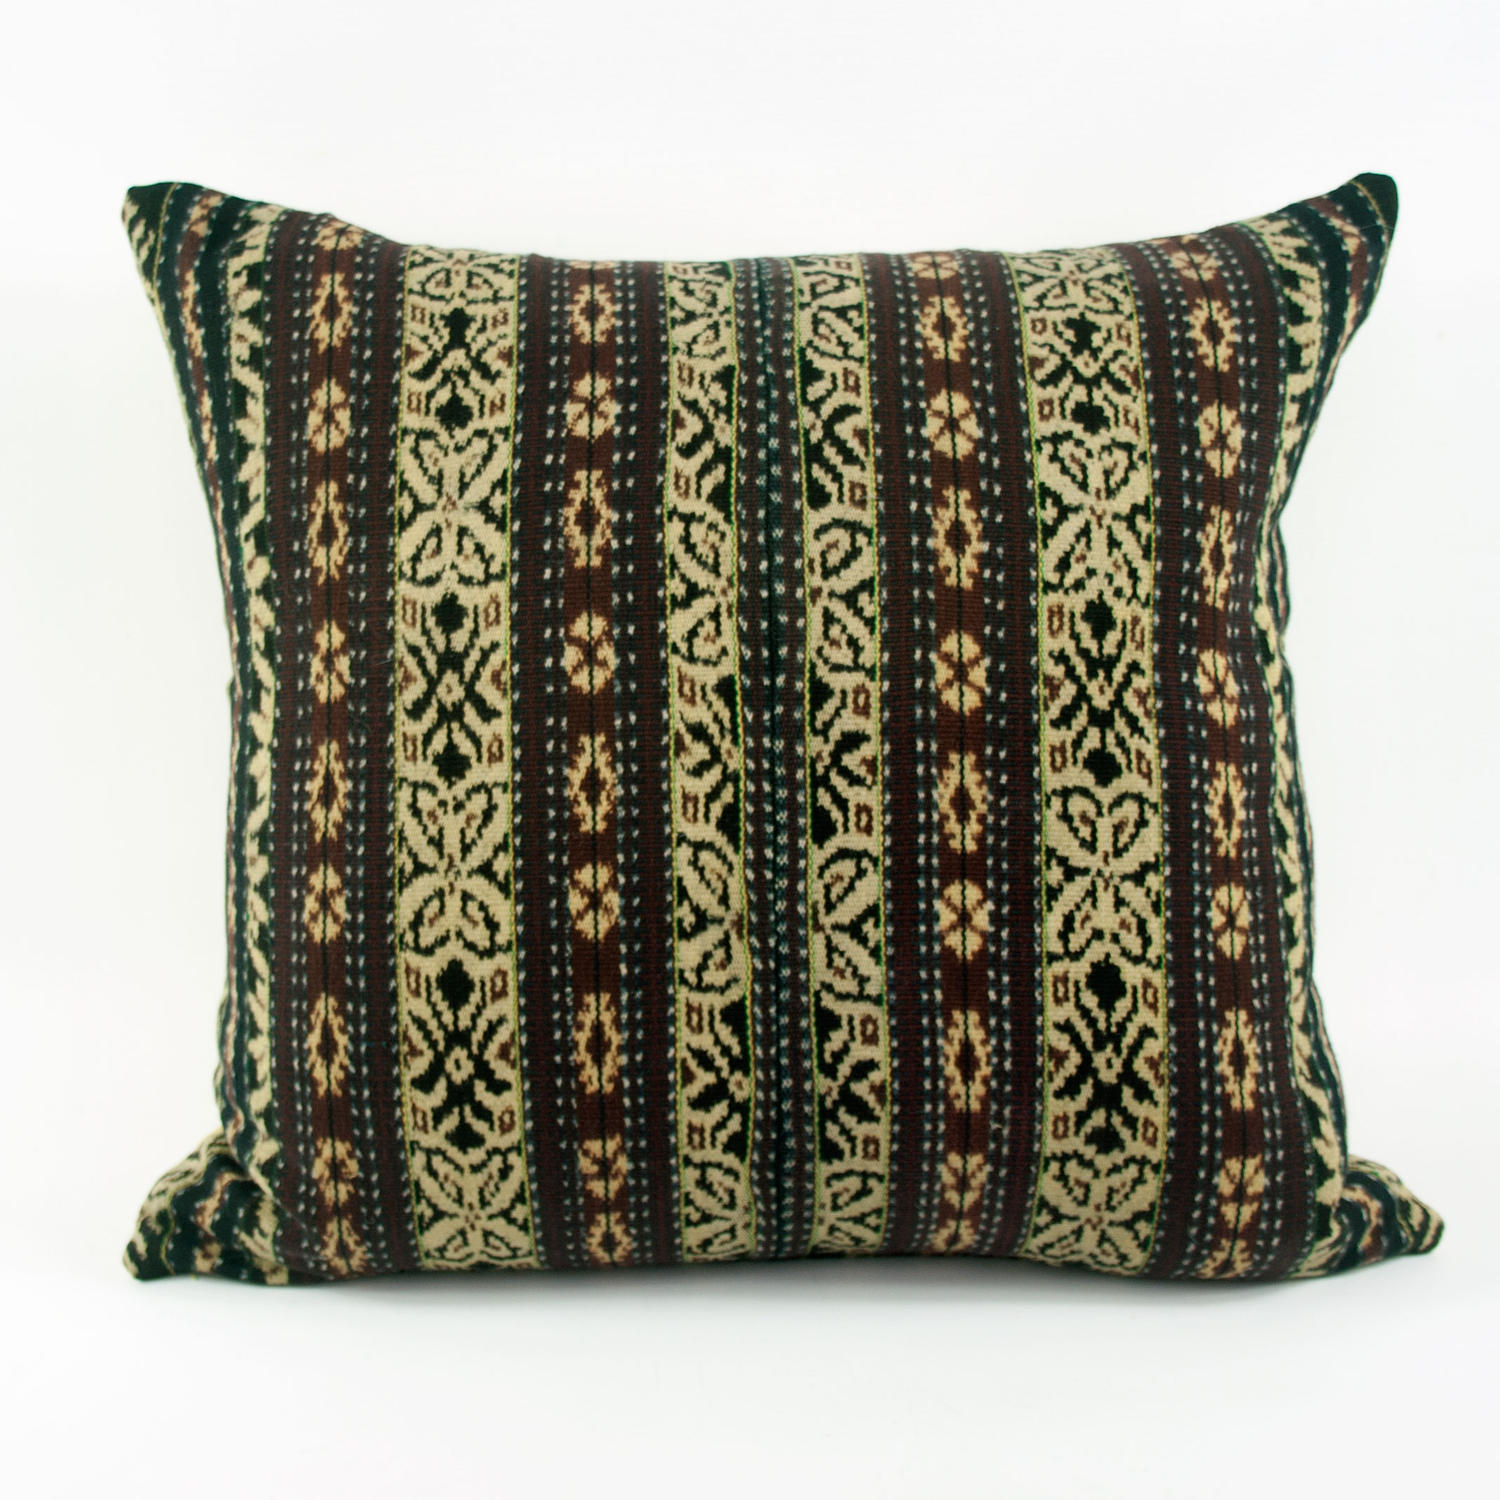 Ikat Cushions, Mustard & Brown